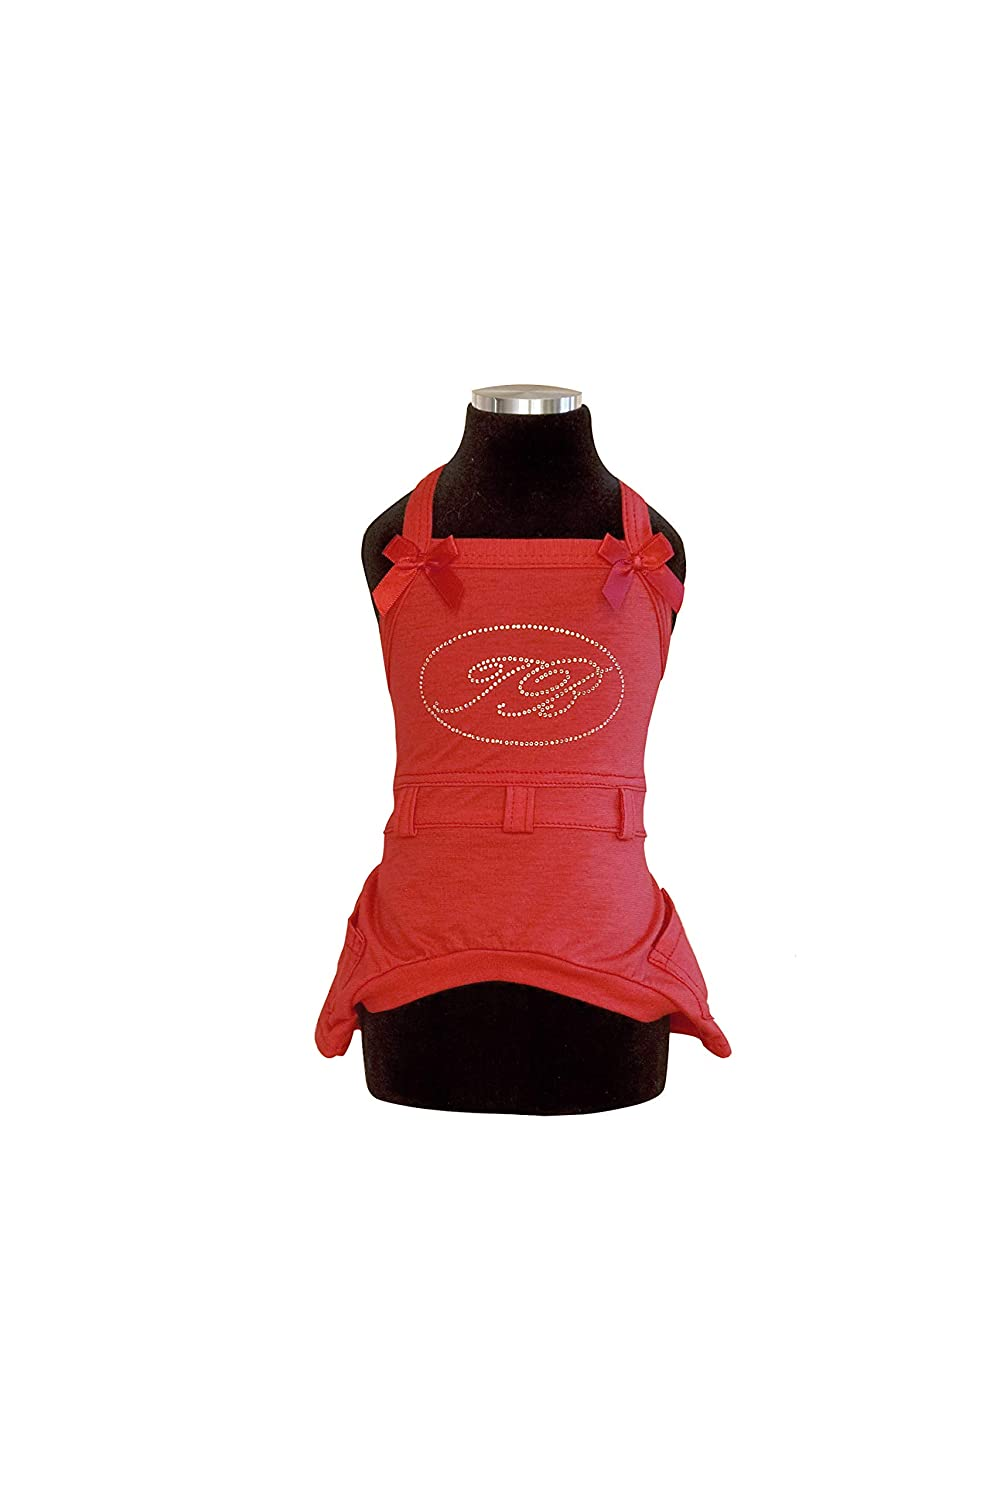 Trilly All Brilli Lavinia Jersey Dungarees Logo Application in Swarovski Stones, Red, S M